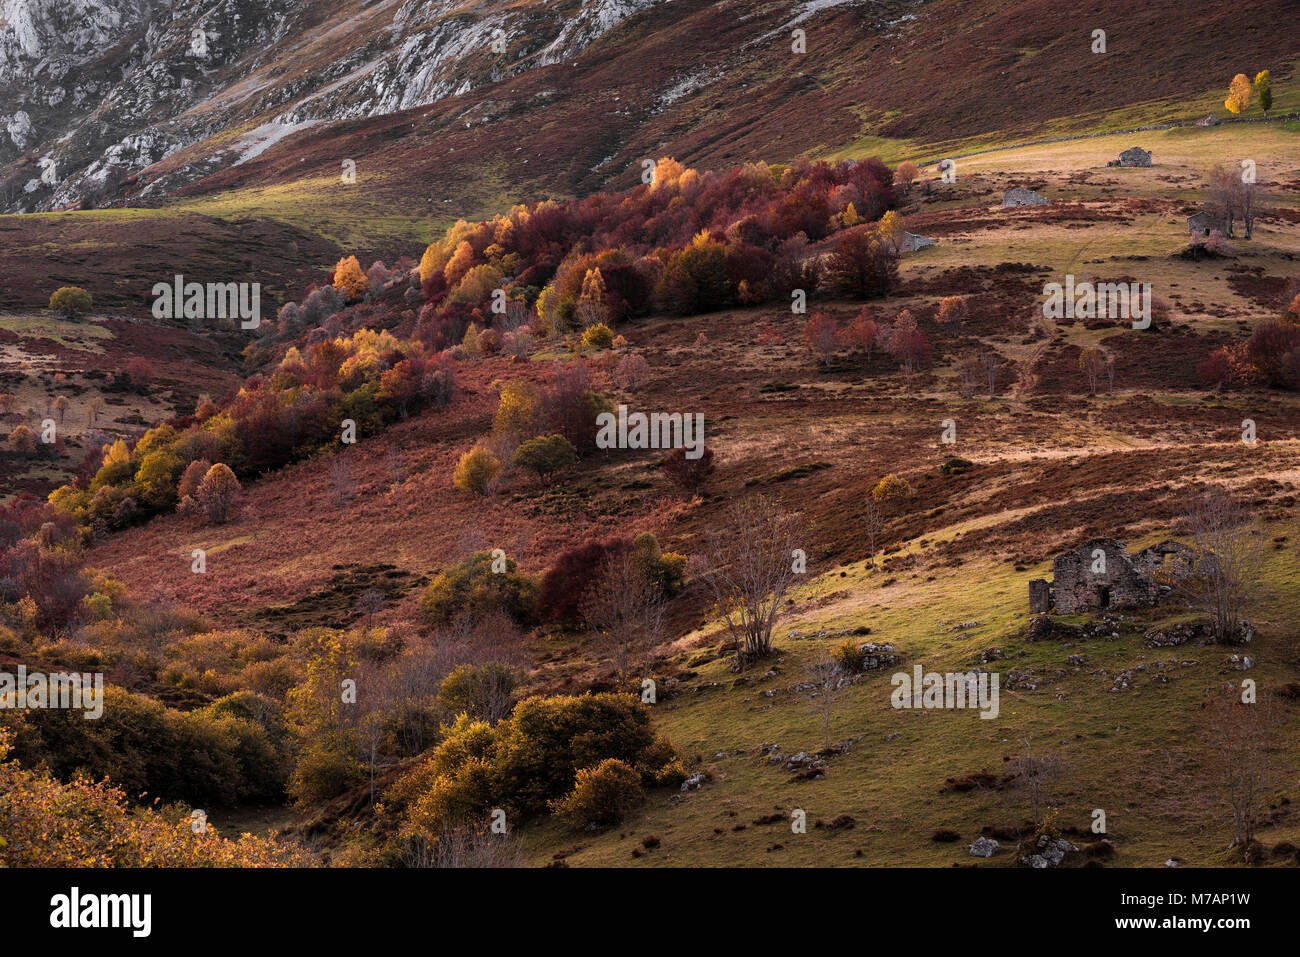 Autumn landscape in the Picos de Europa with ancient ruins, Cantabria, Spain - Stock Image